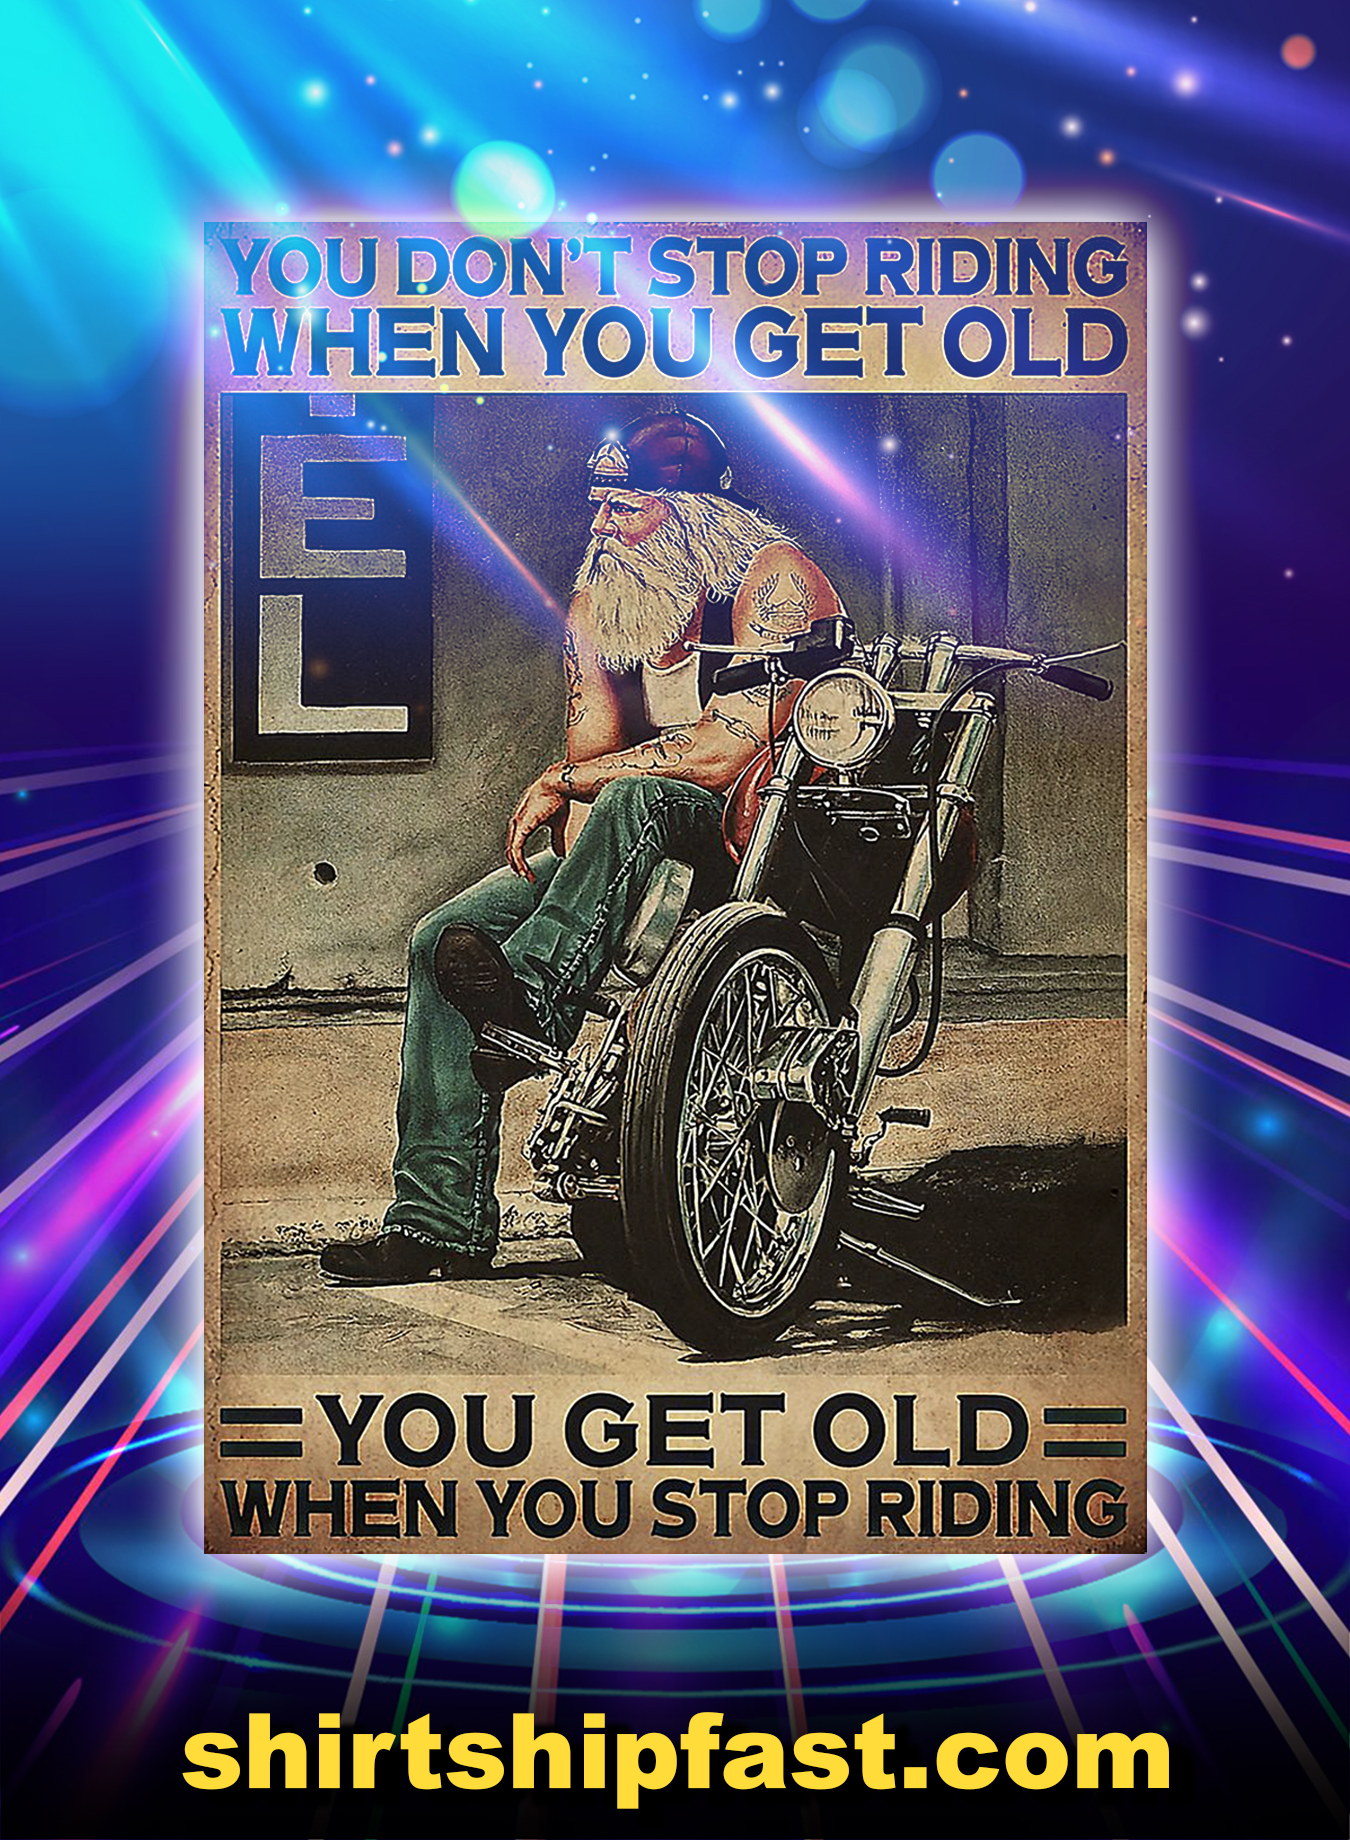 Motorcycle biker you don't stop racing when you get old poster - A3